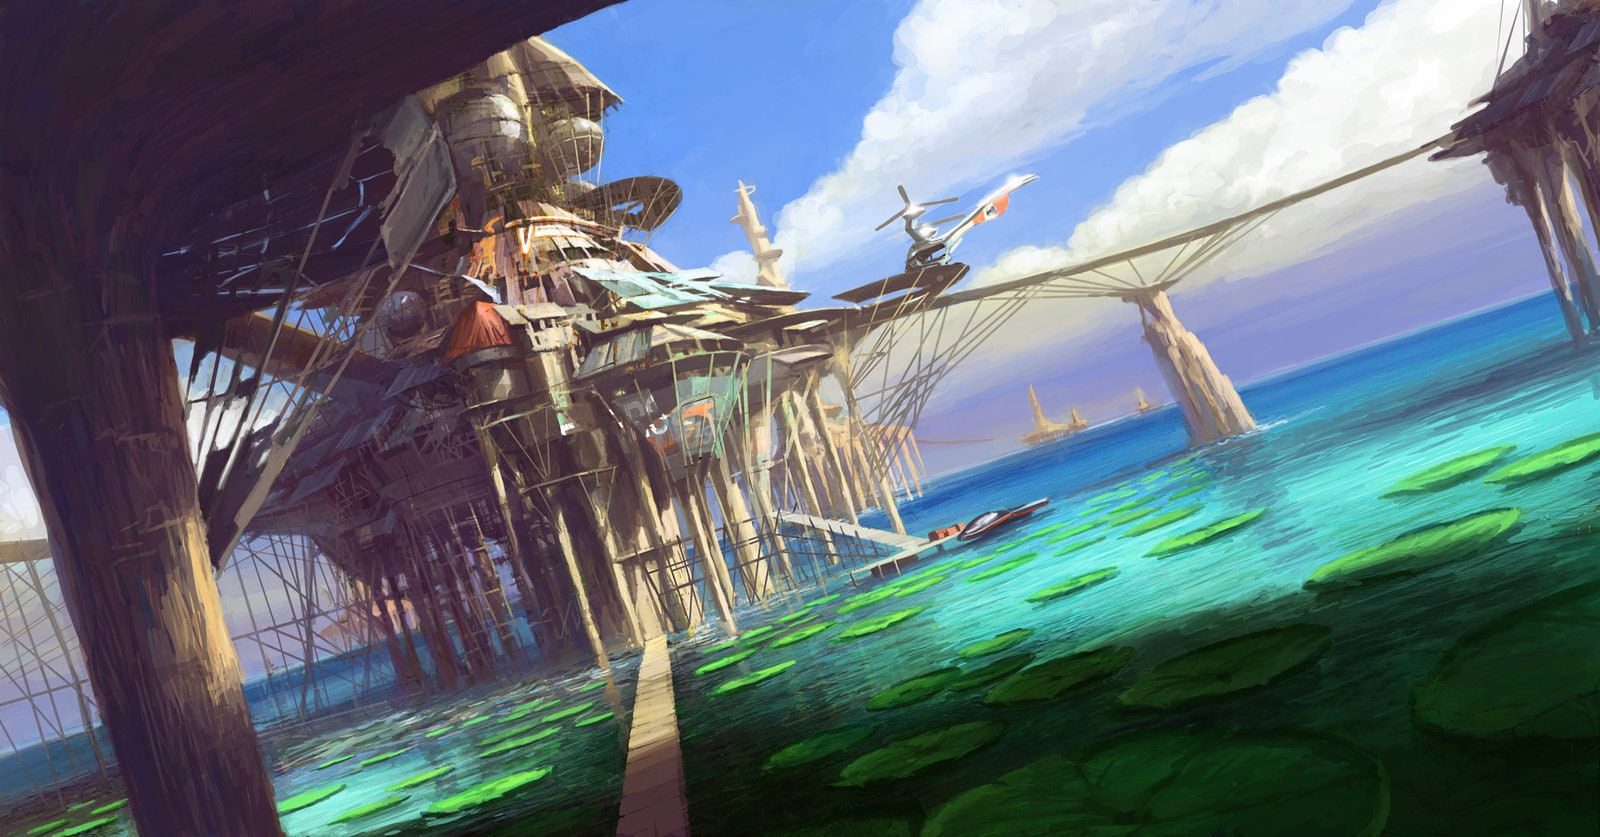 imaginefx_smuggler_archipelago_by_peteamachree-d33yp5v